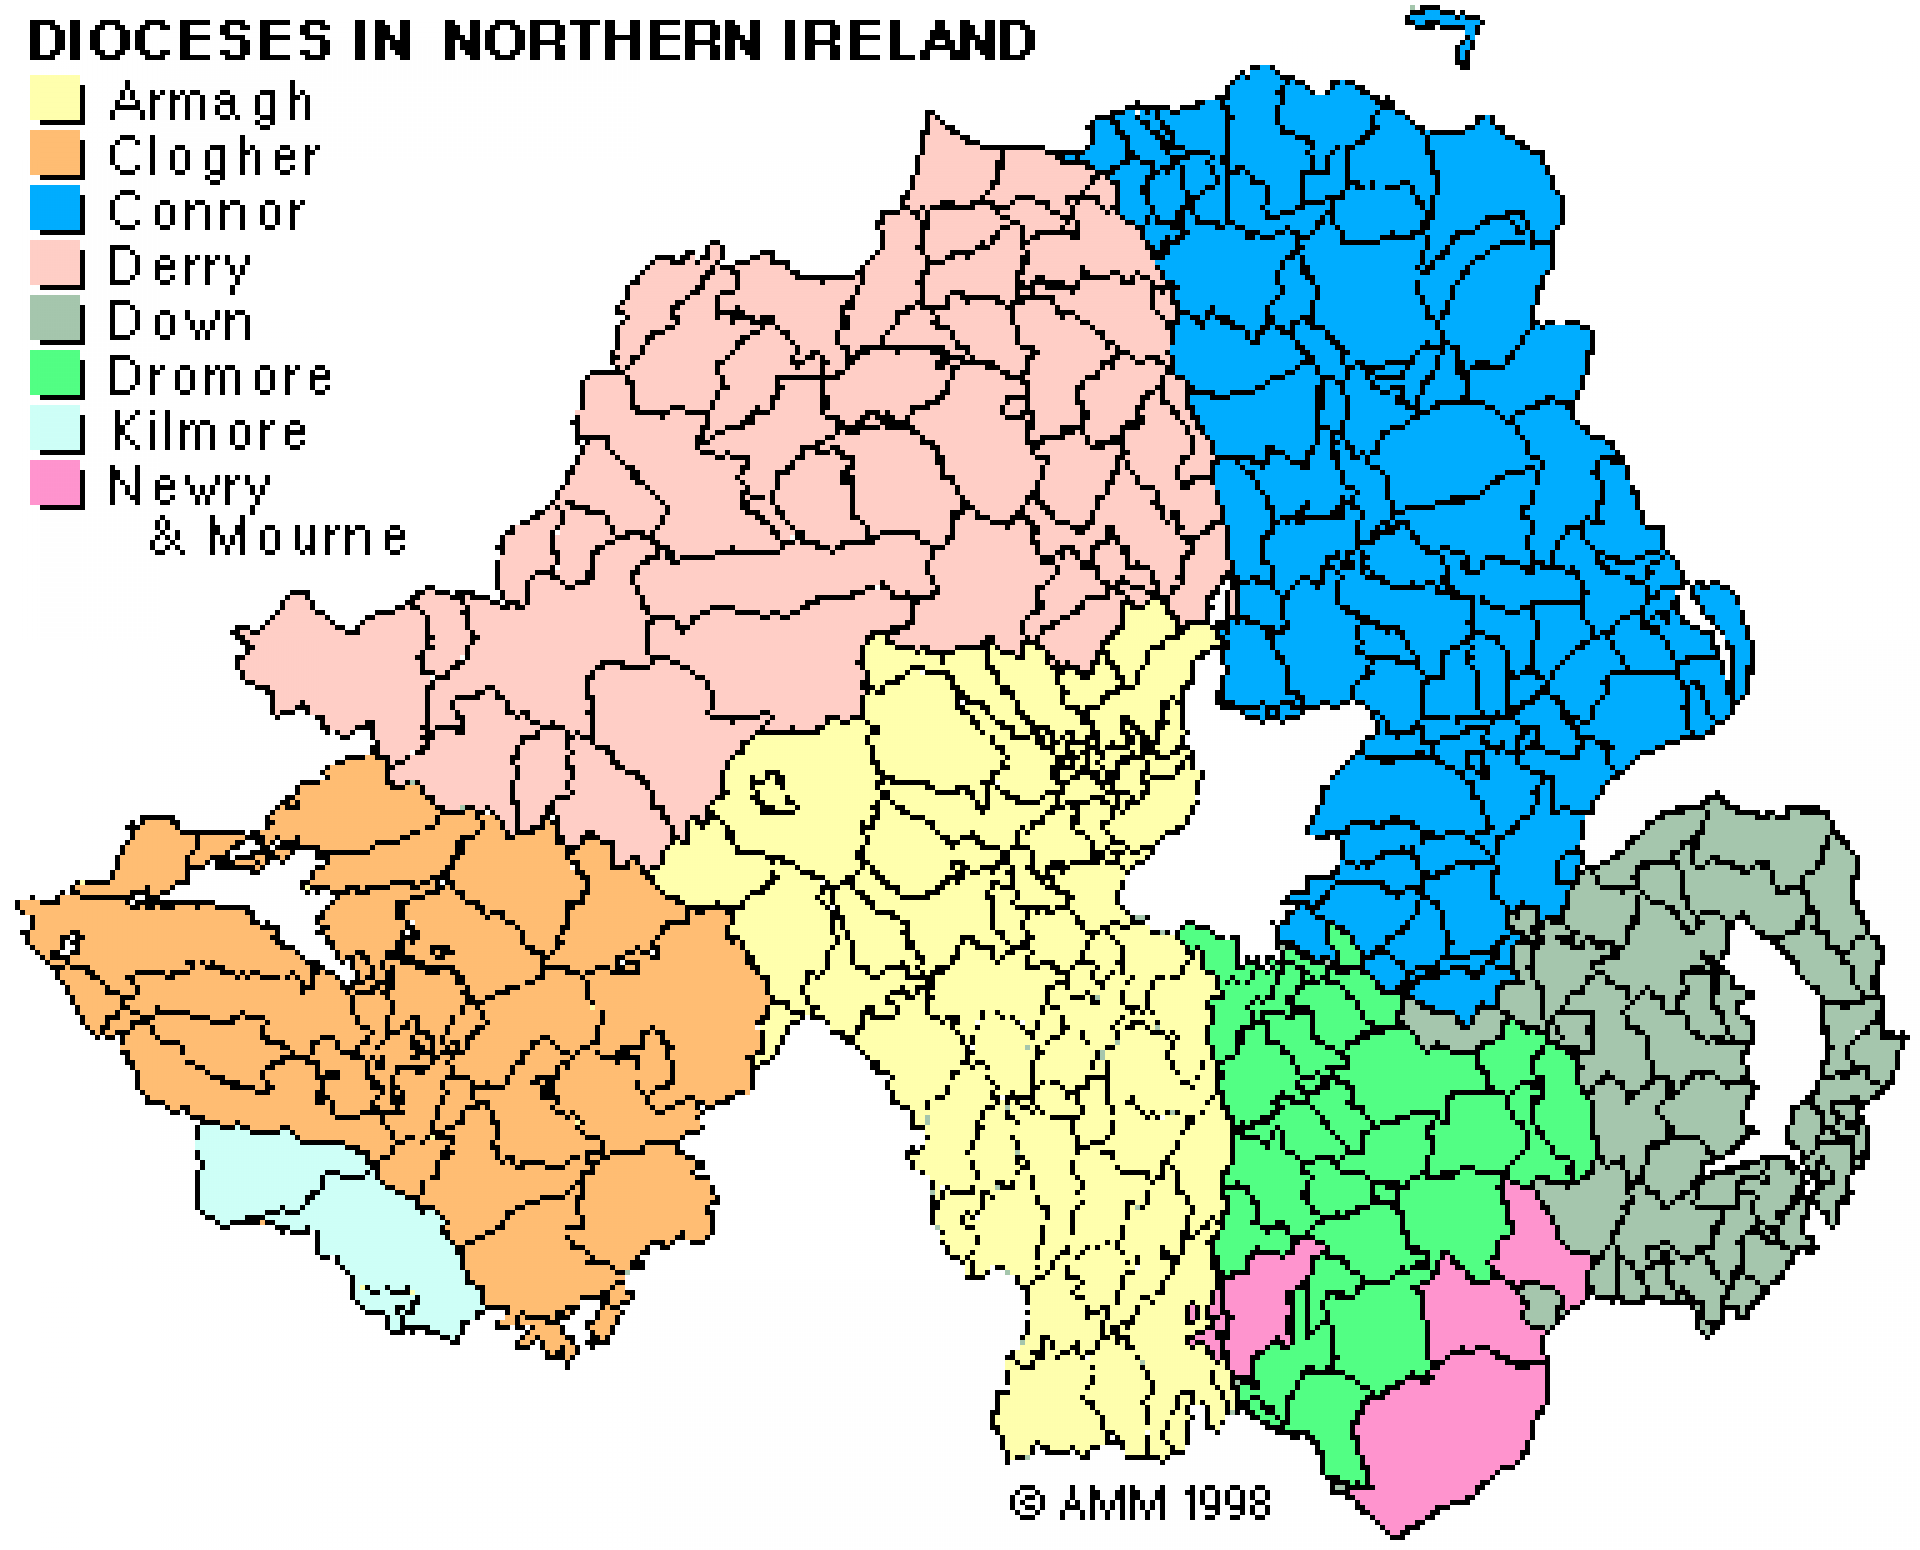 Map shows the dioceses within the six counties of Northern Ireland.